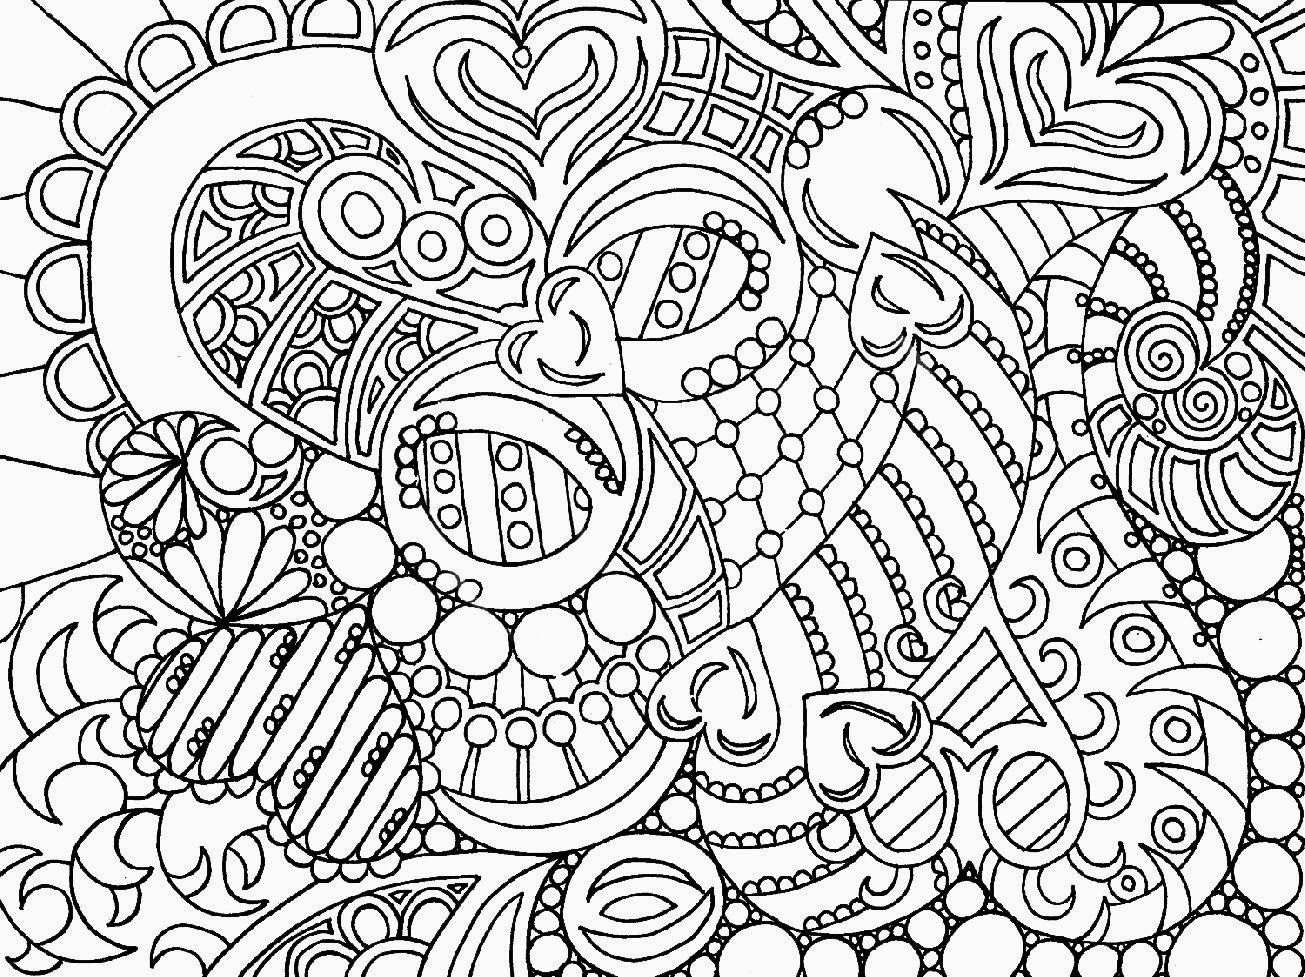 Best ideas about Large Adult Coloring Books . Save or Pin Adult Coloring Sheets Now.